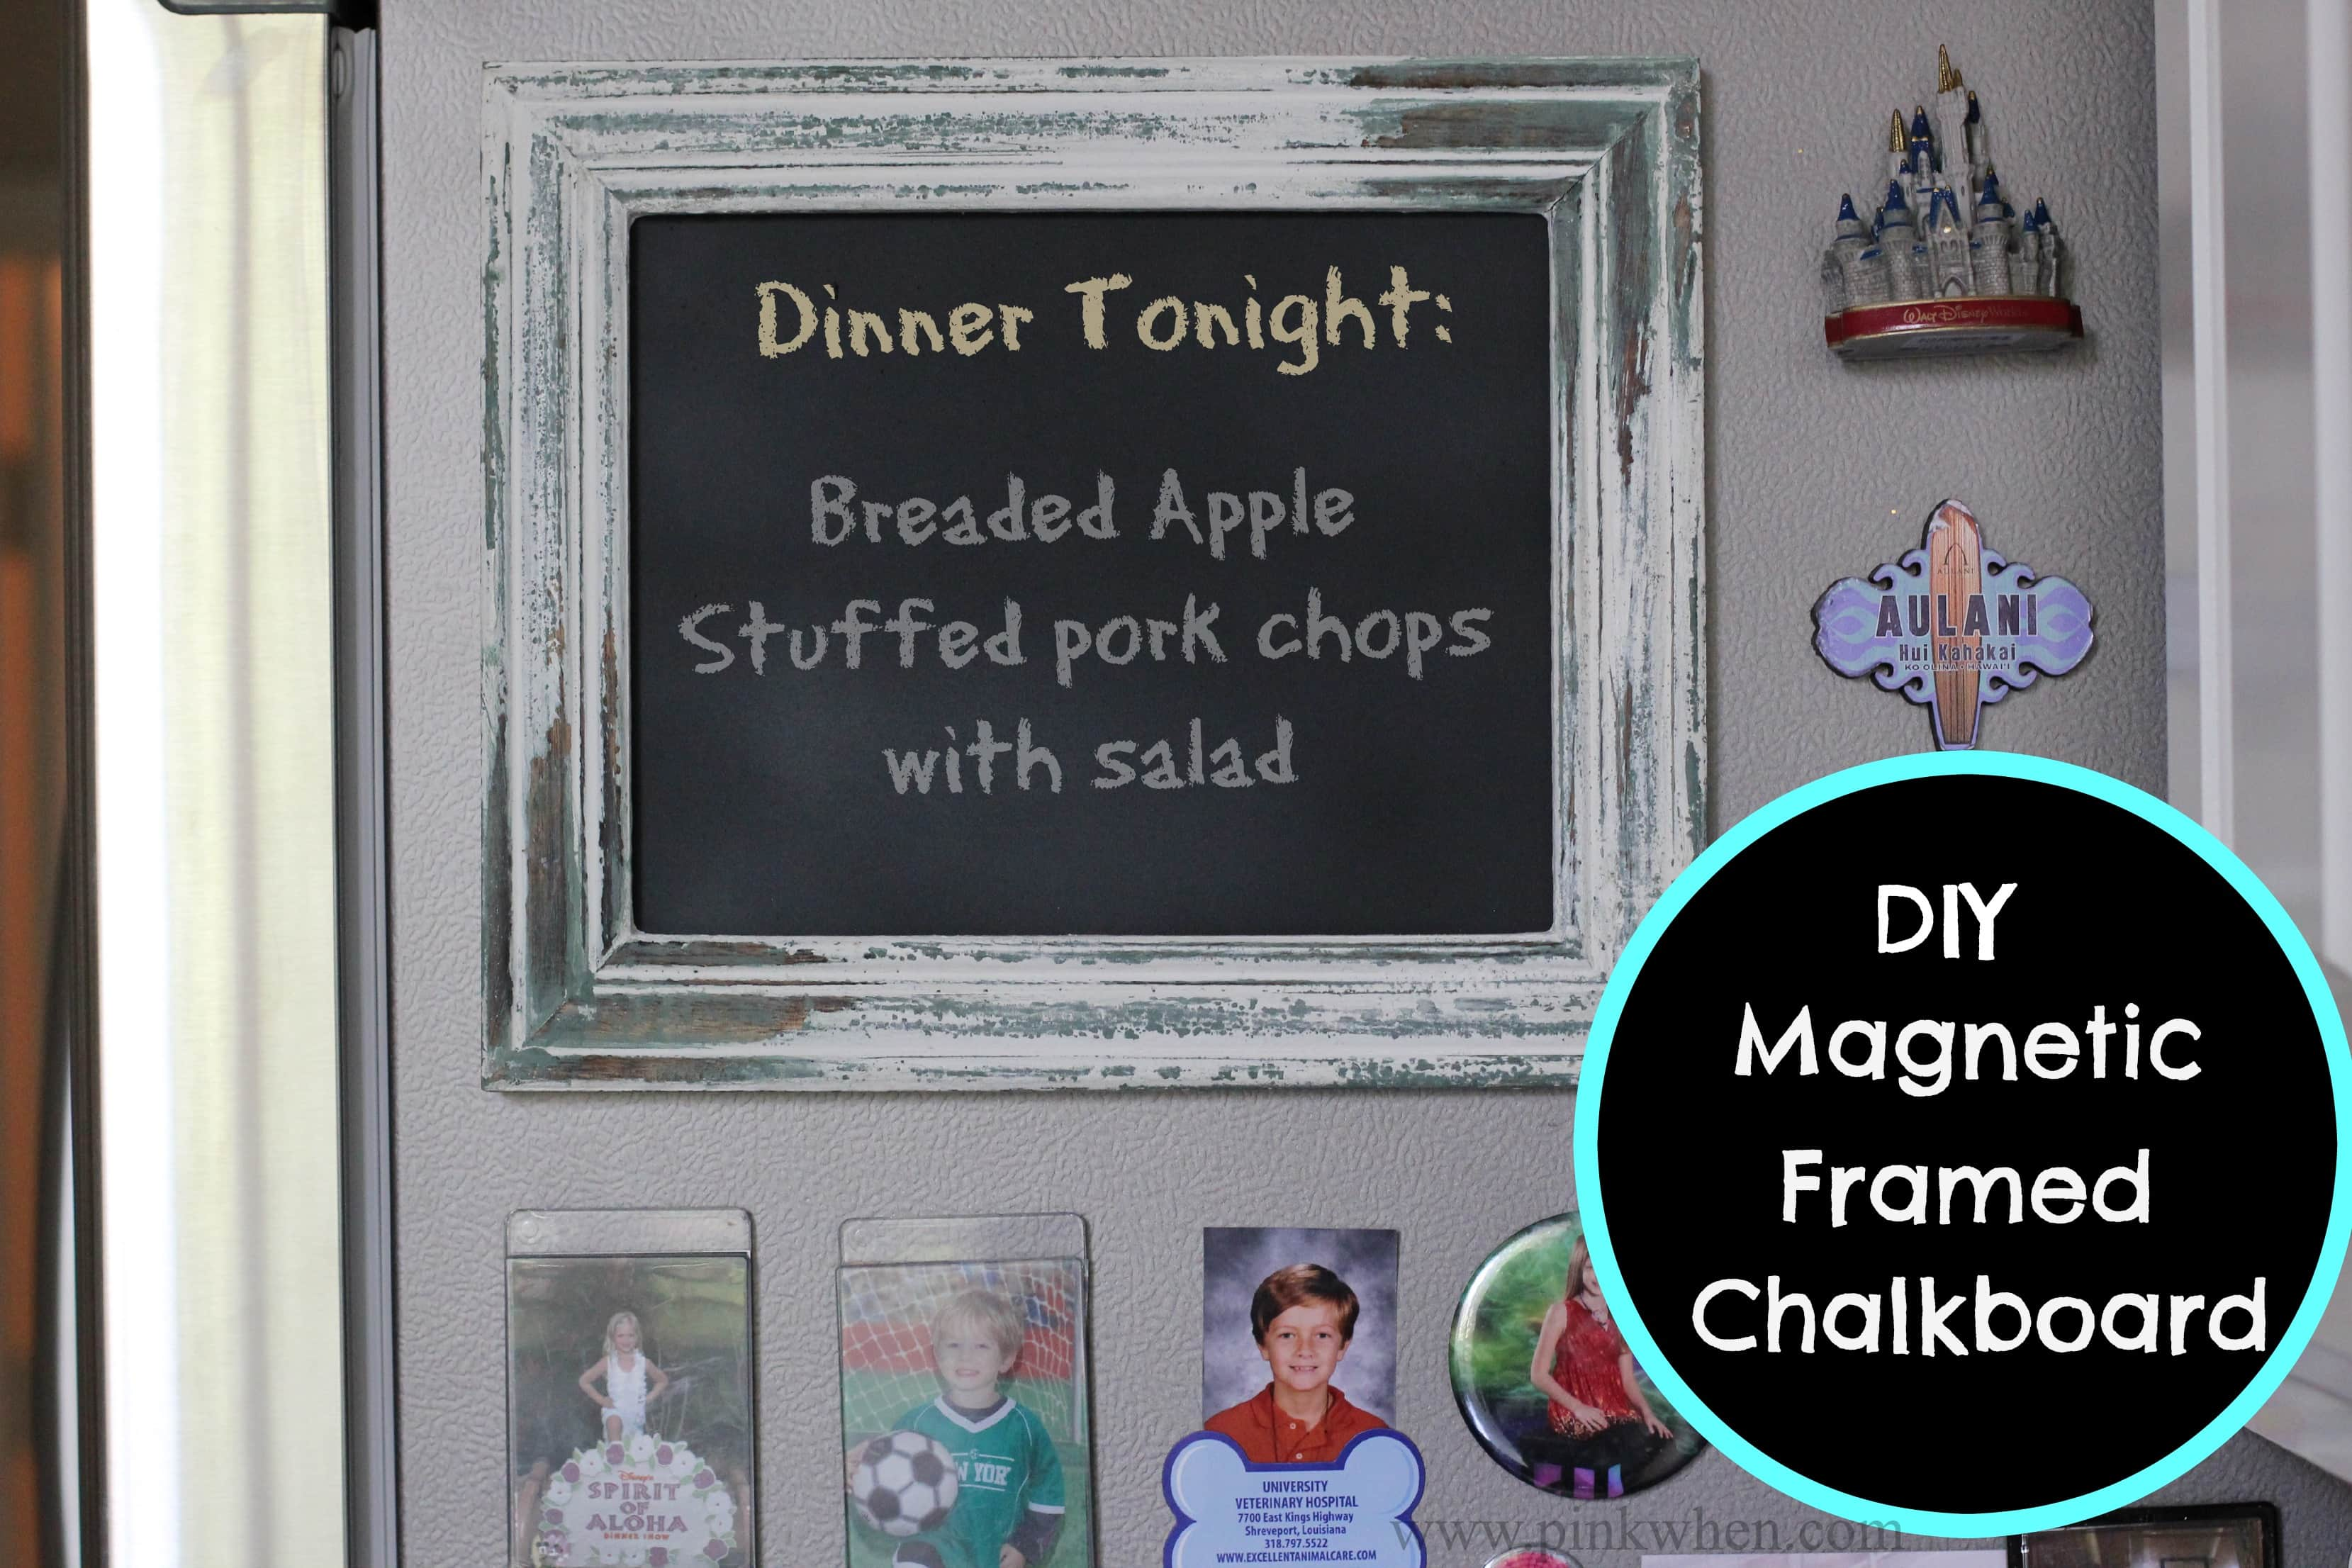 DIY Magnetic Framed Chalkboard